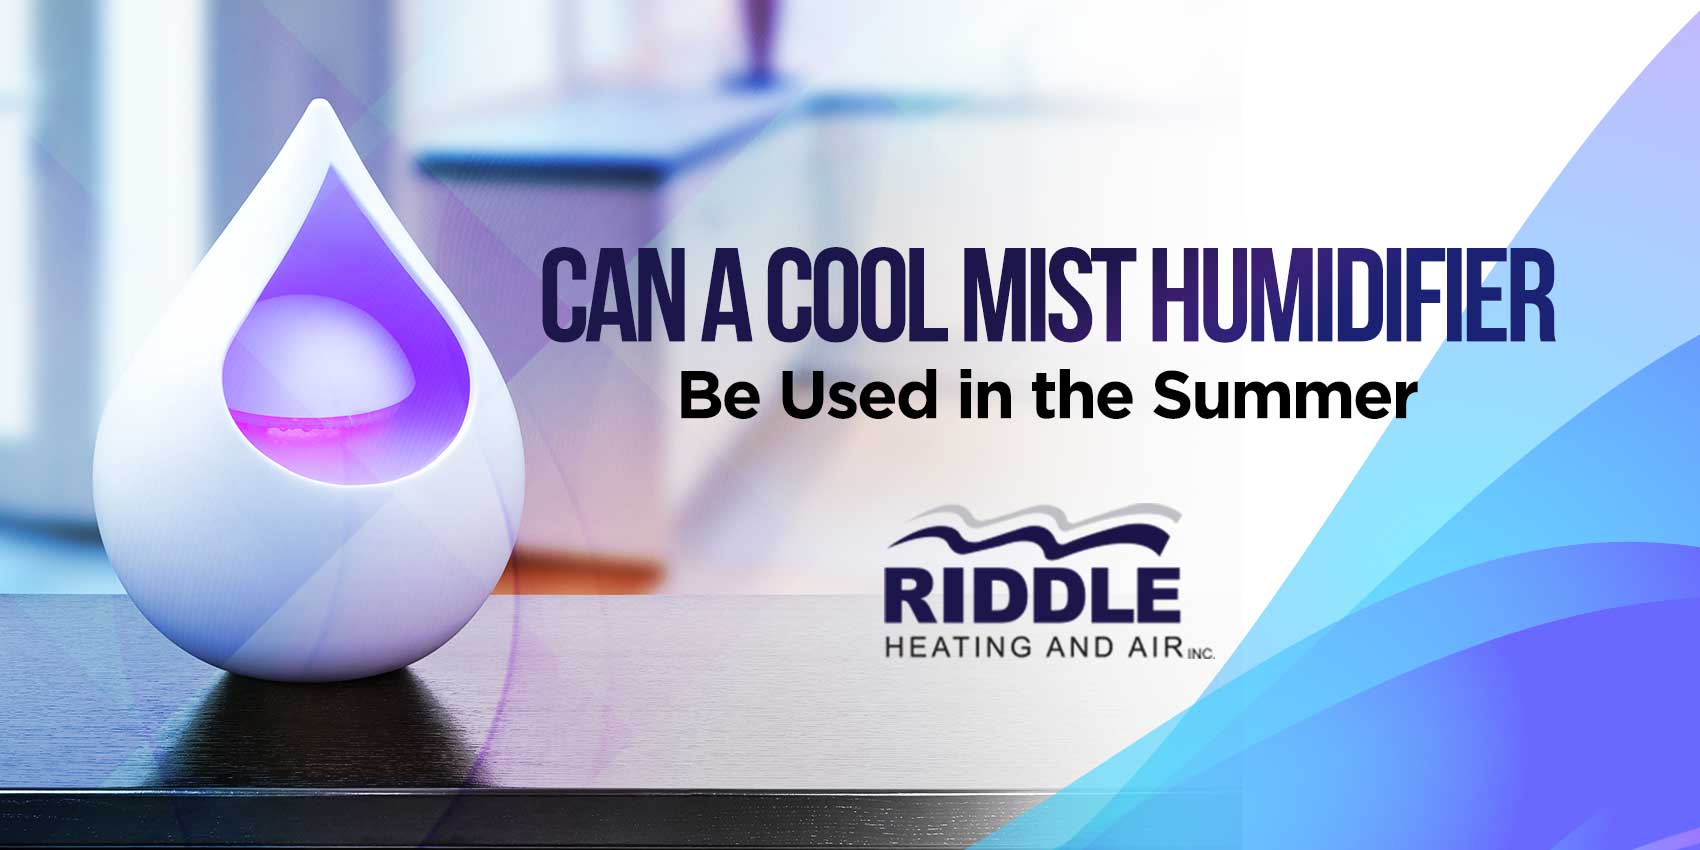 Can a Cool Mist Humidifier Be Used in the Summer?